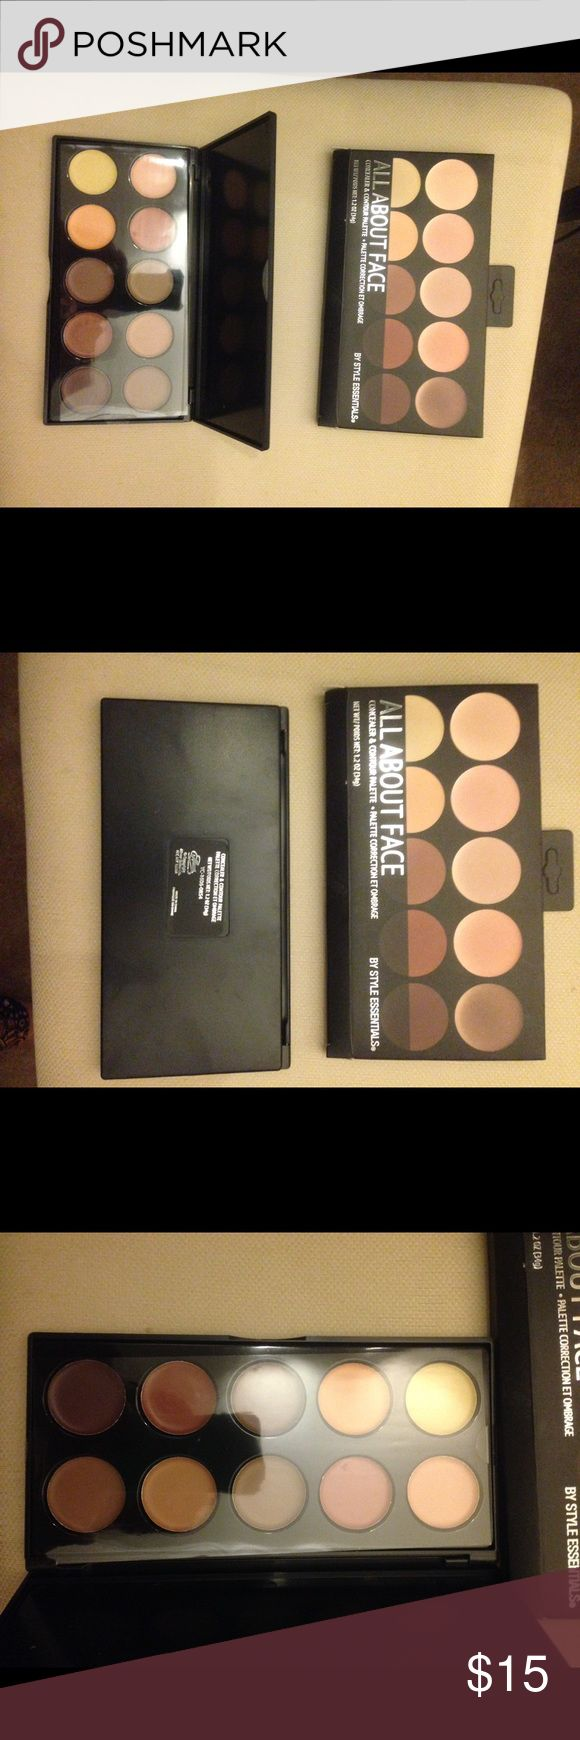 Concealer and Contour Palette CREAM  Nib All About Face Cream Contour Palette by Style Essentials New Unused Untested Sephora Makeup Concealer